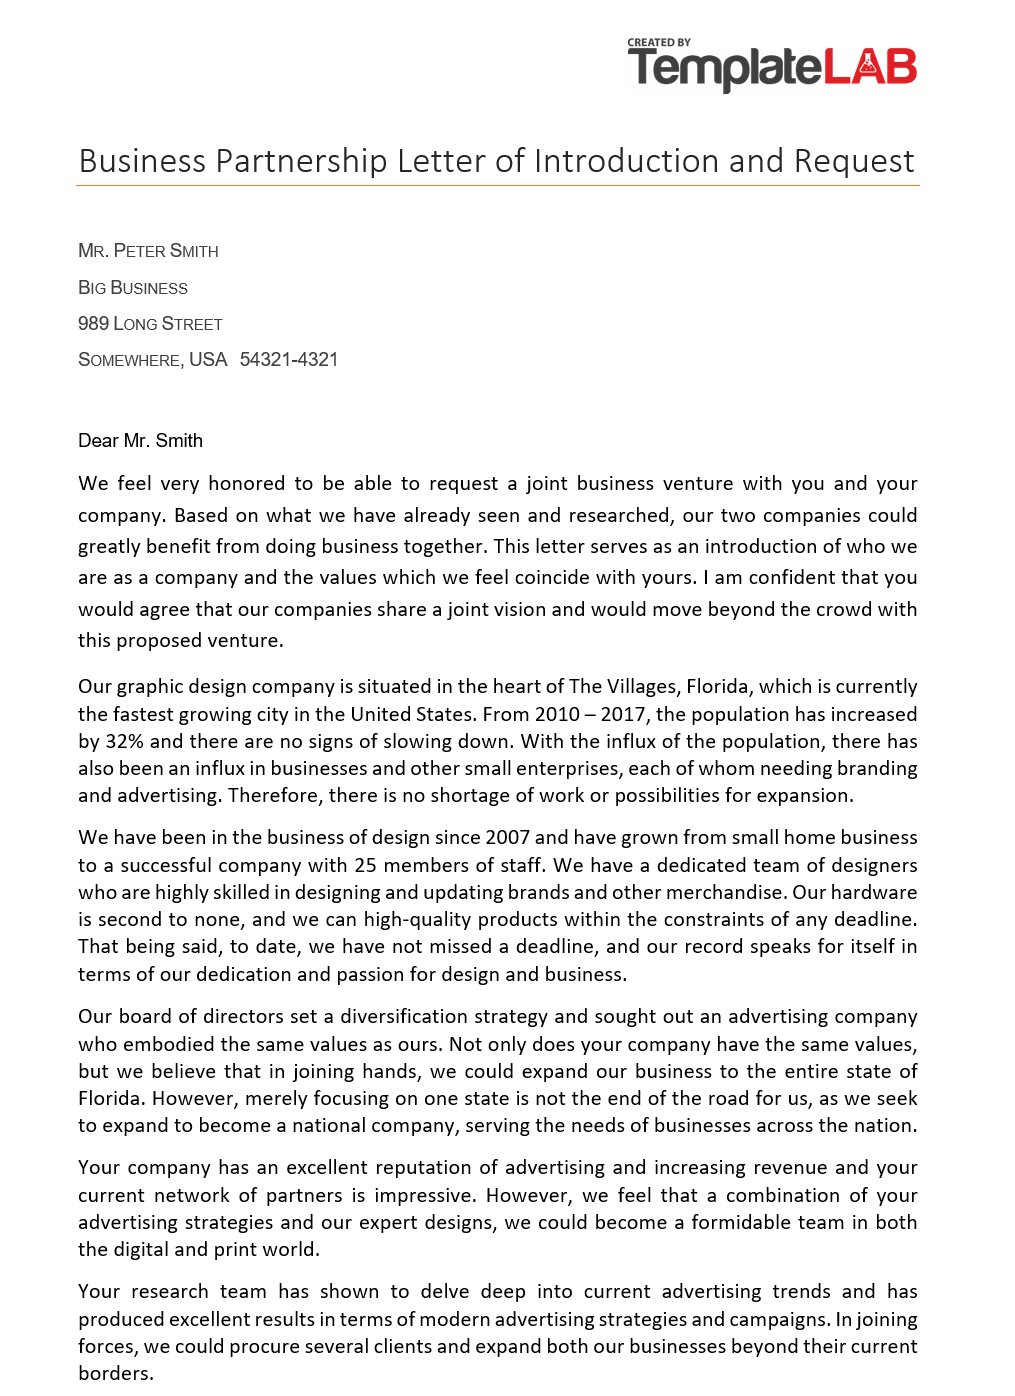 Free Business Partnership Letter of Introduction 2